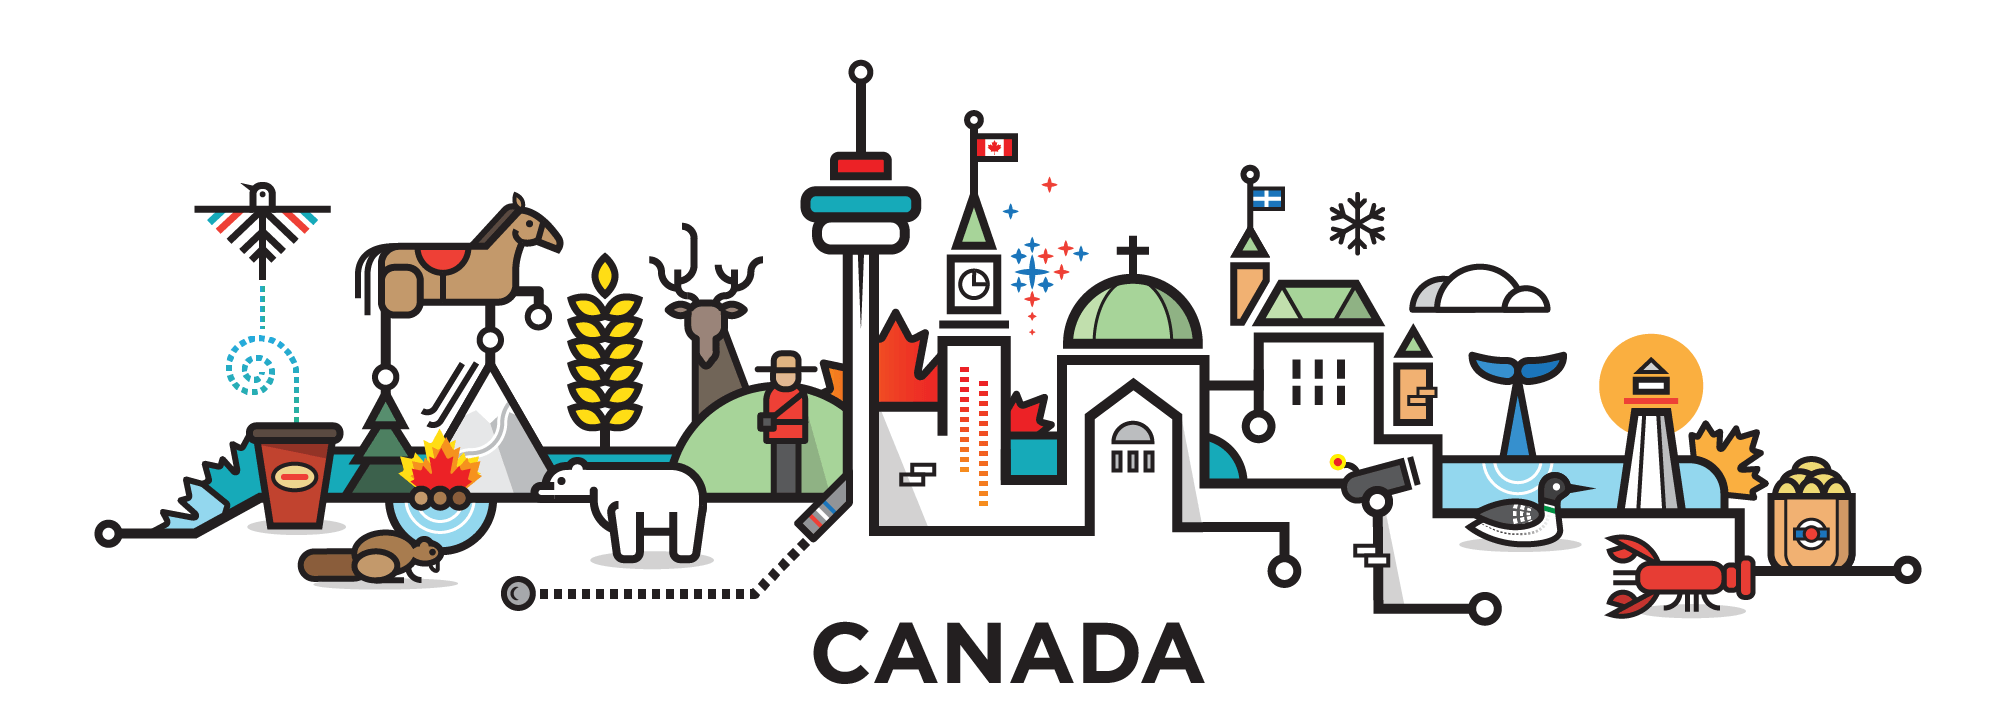 canada-cityline-illustration-by-loogart